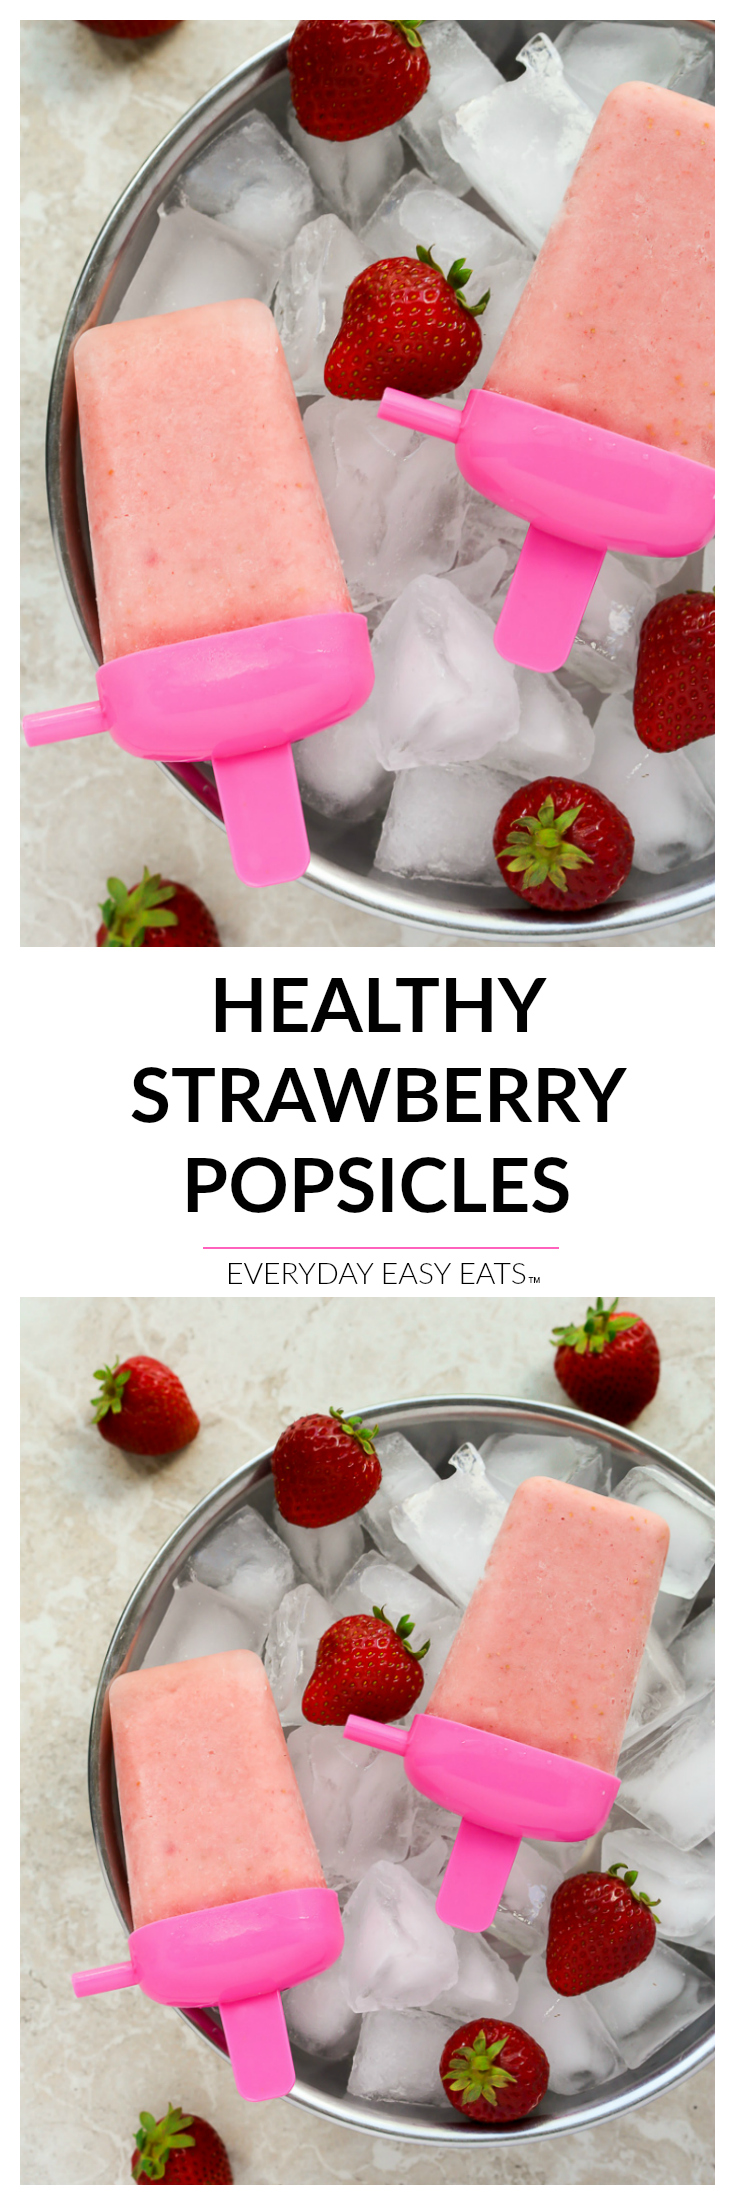 Healthy Strawberry Popsicles - 4-ingredients are all you need to make these simple, naturally sweetened frozen treats!   EverydayEasyEats.com